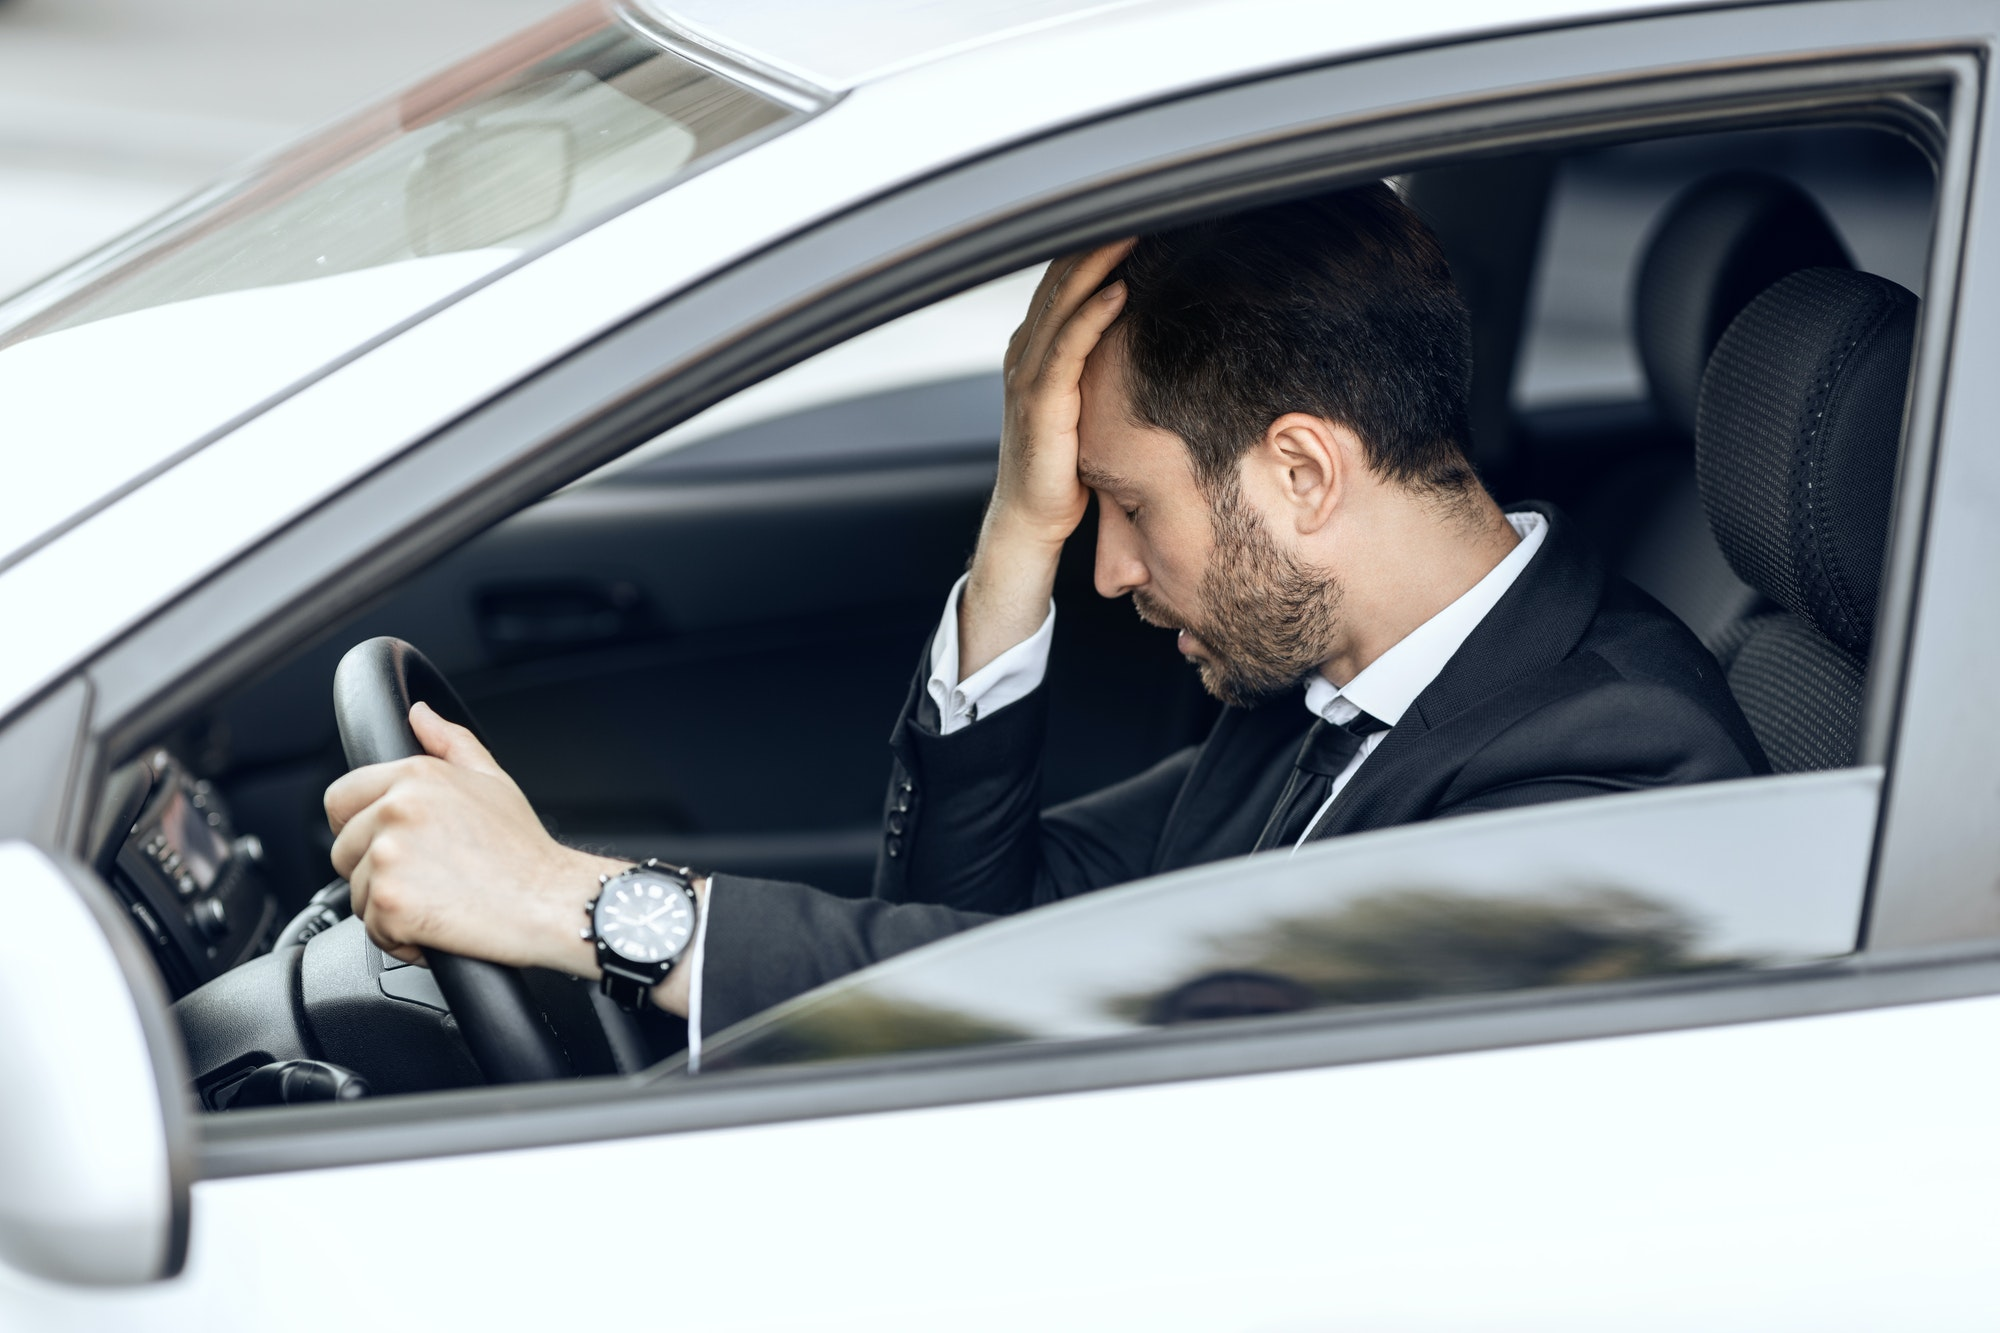 Stressed businessman stuck in traffic, late to airport